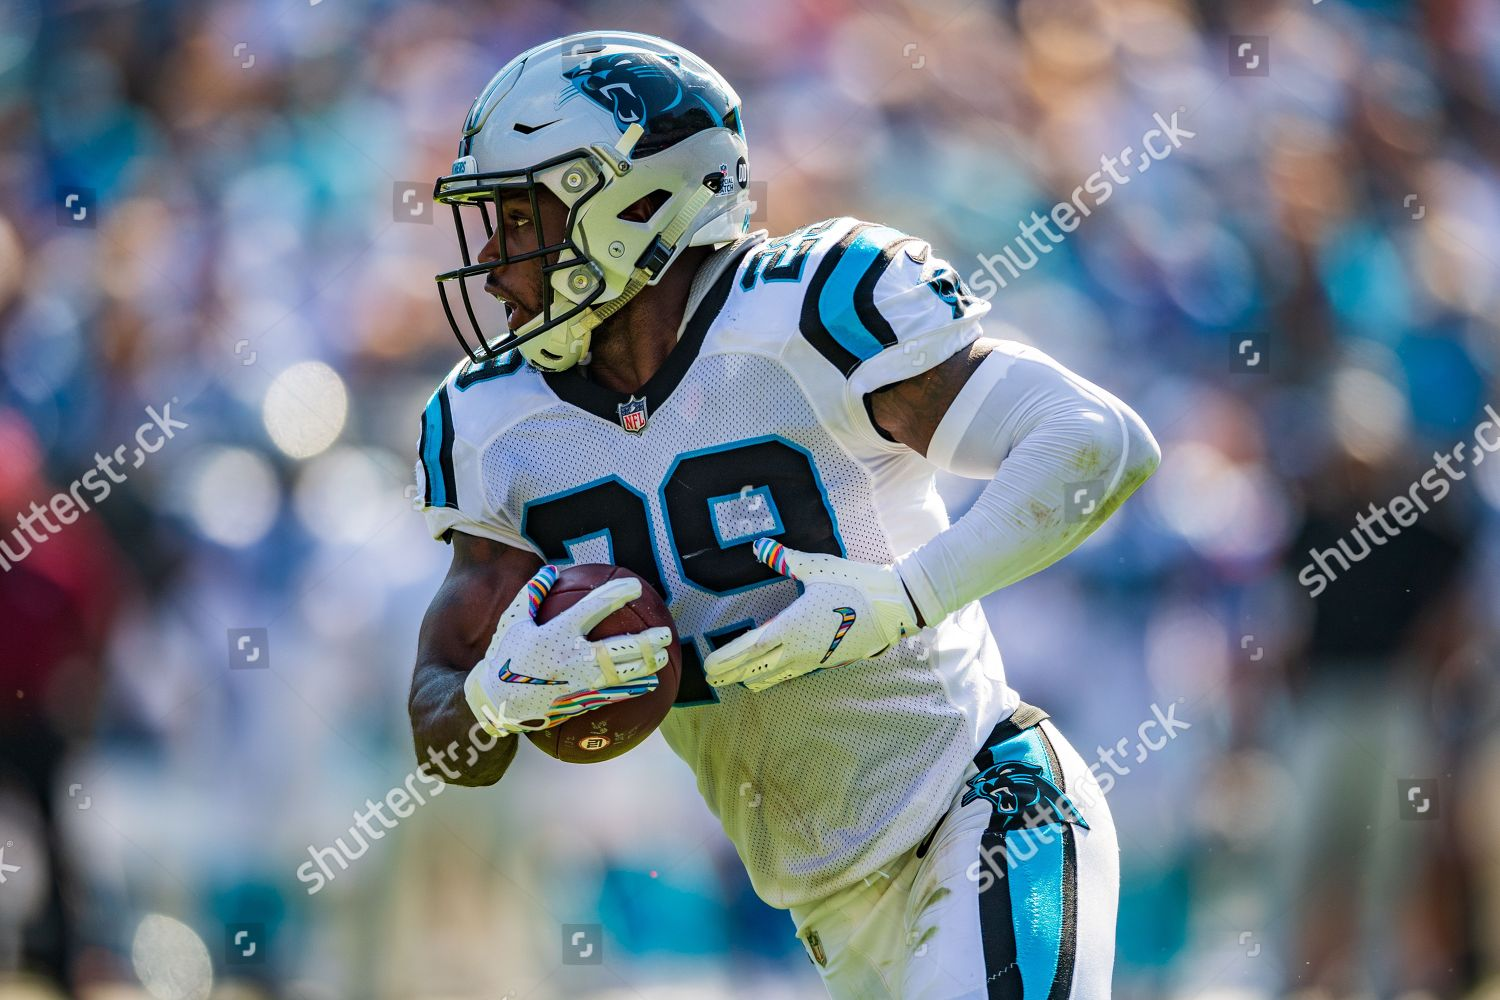 ee3f40b89 Carolina Panthers free safety Mike Adams 29 Editorial Stock Photo ...